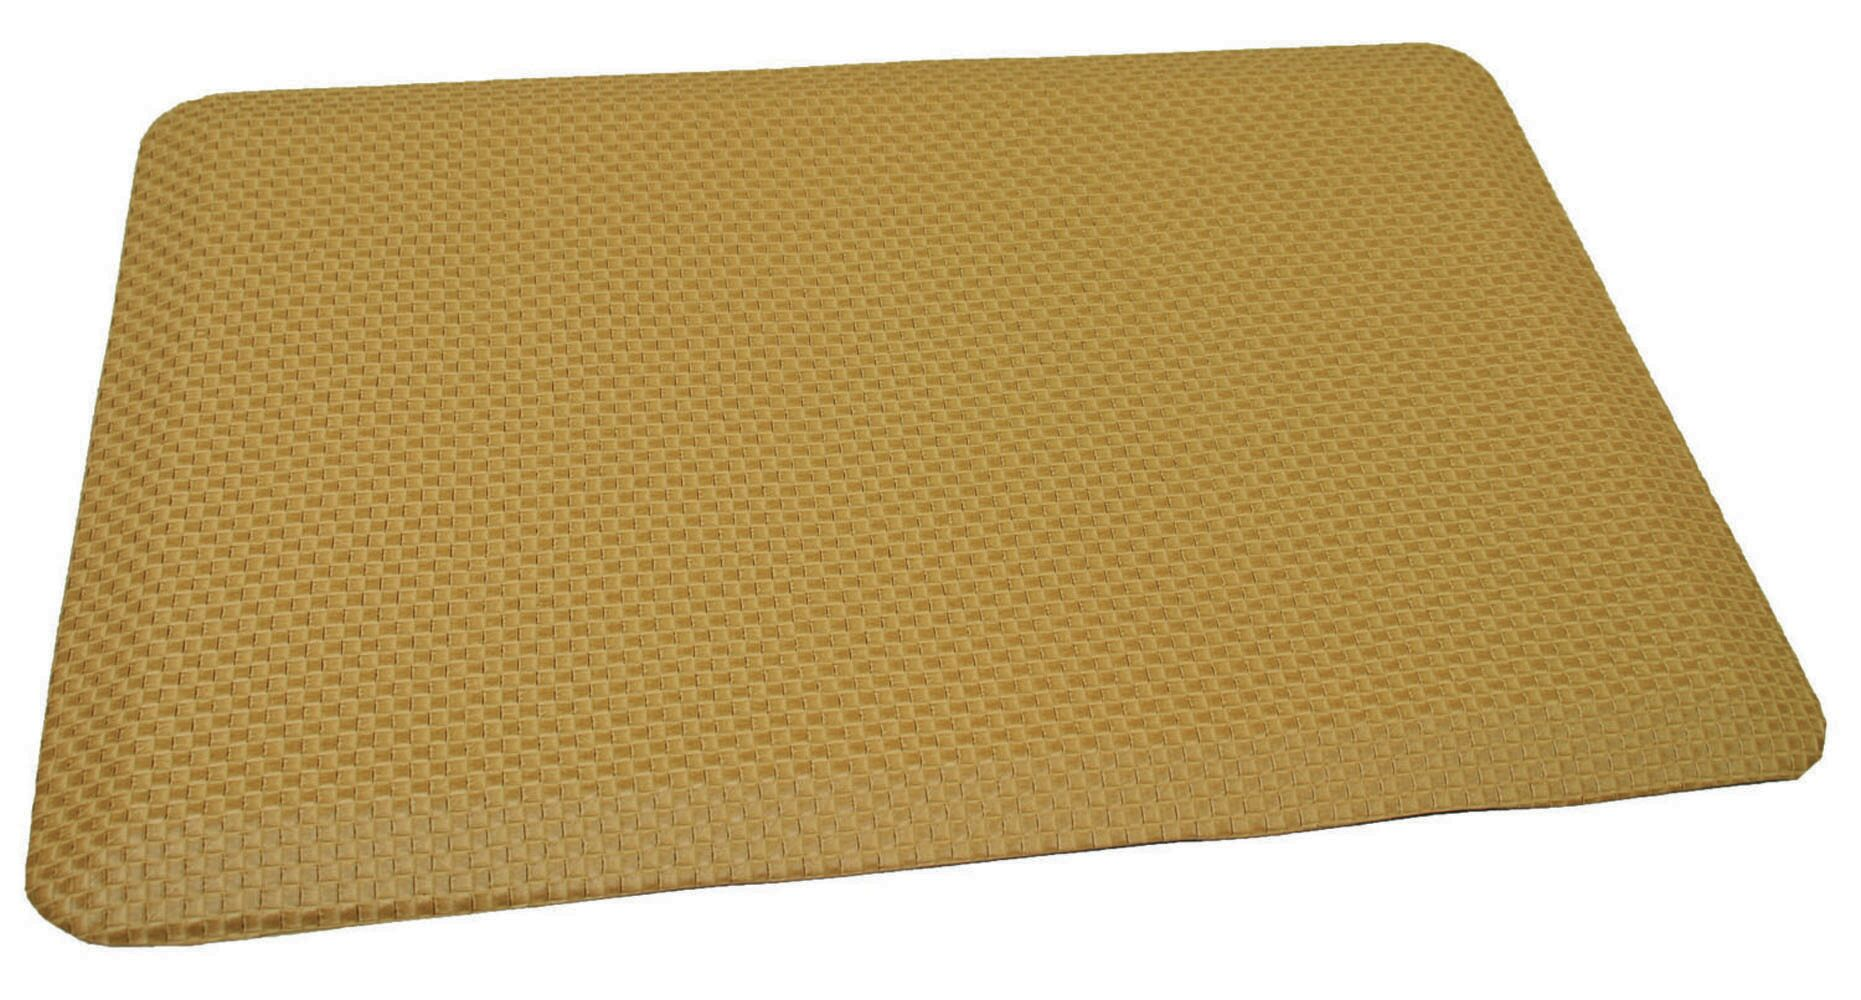 Anti-Fatigue Comfort Kitchen Mat Mat Size: 2' x 4', Color: Rich Light Tanned